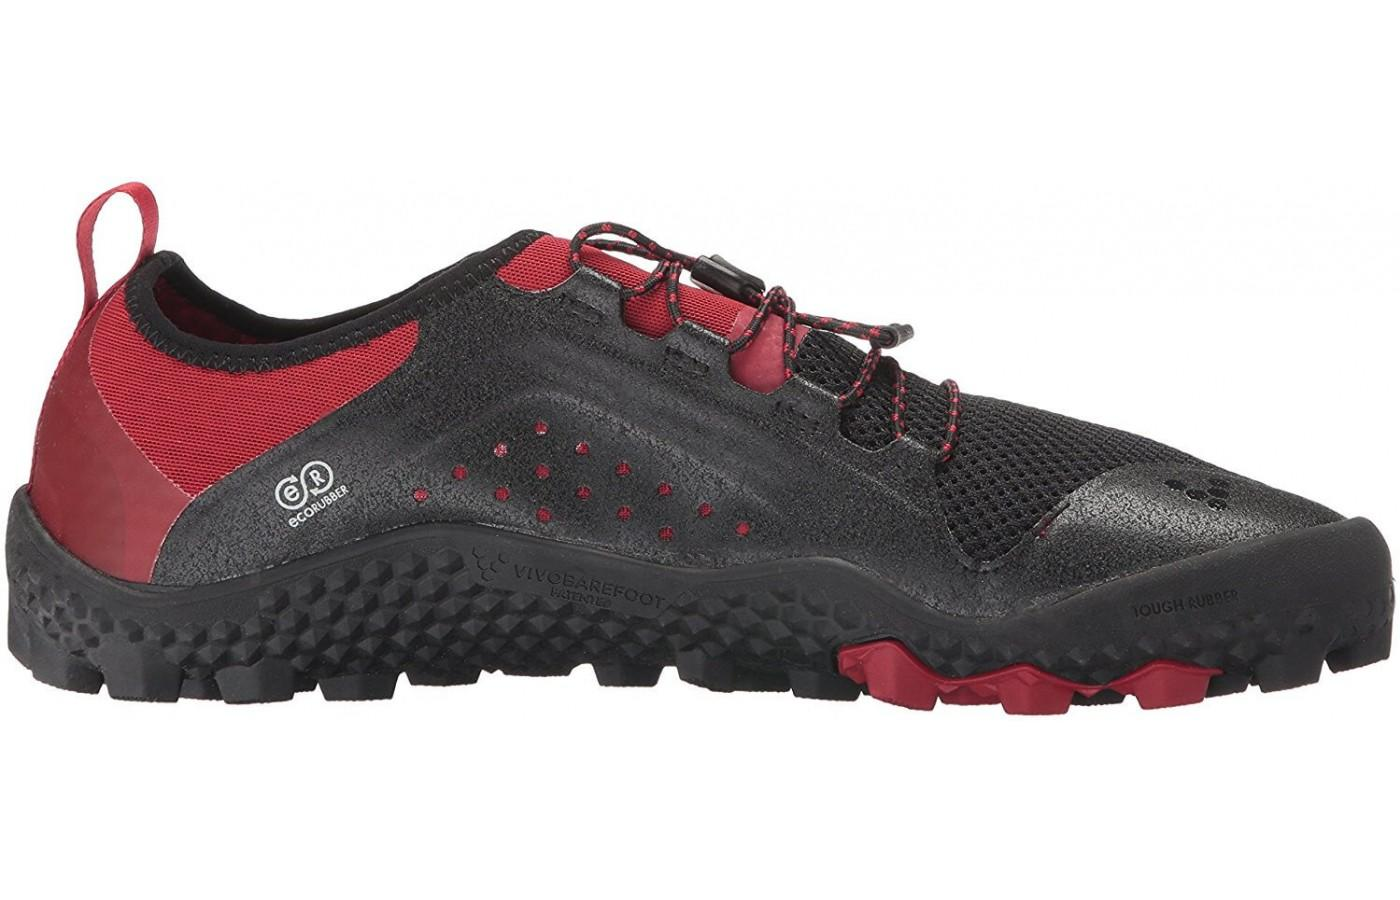 This is a zero drop shoe that supports the natural movement of the foot.